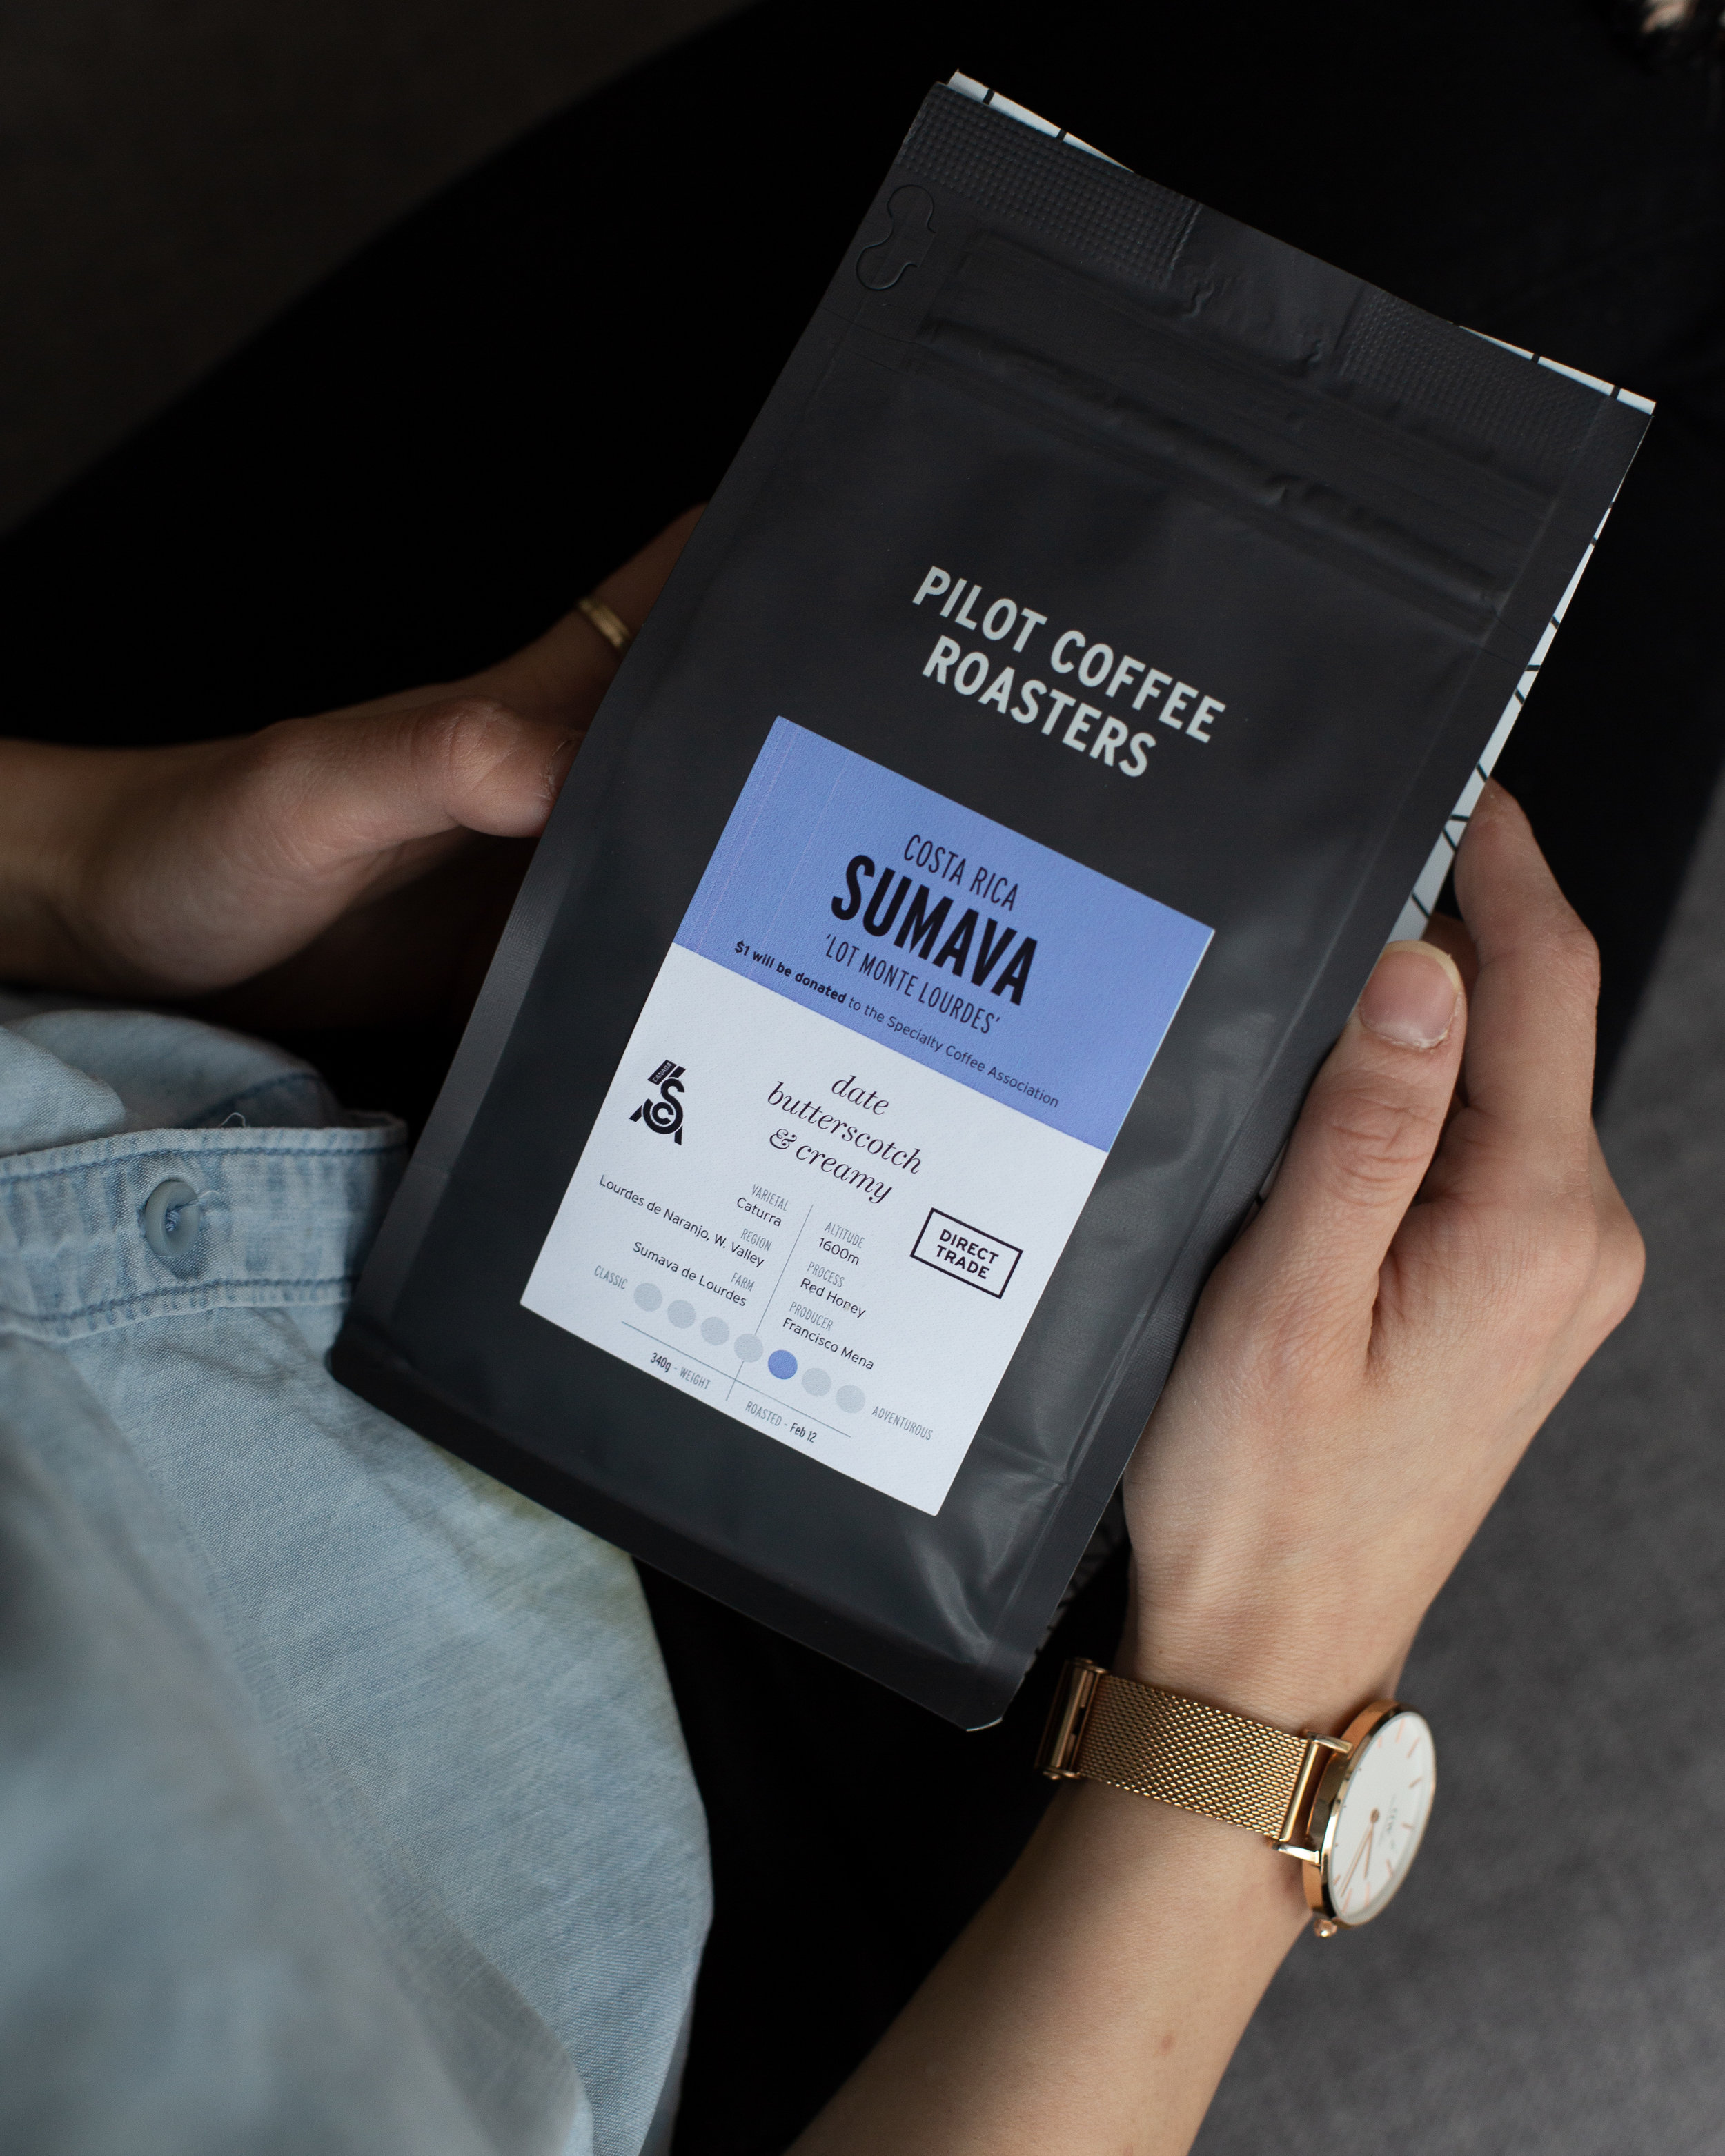 SCA x Pilot Coffee Roasters - feb '19 | One dollar from each bag of Costa Rica Sumava Monte Lourdes is donated directly to the SCA Canadian Chapter, along with raising awareness through Pilot's extensive wholesale and social network.